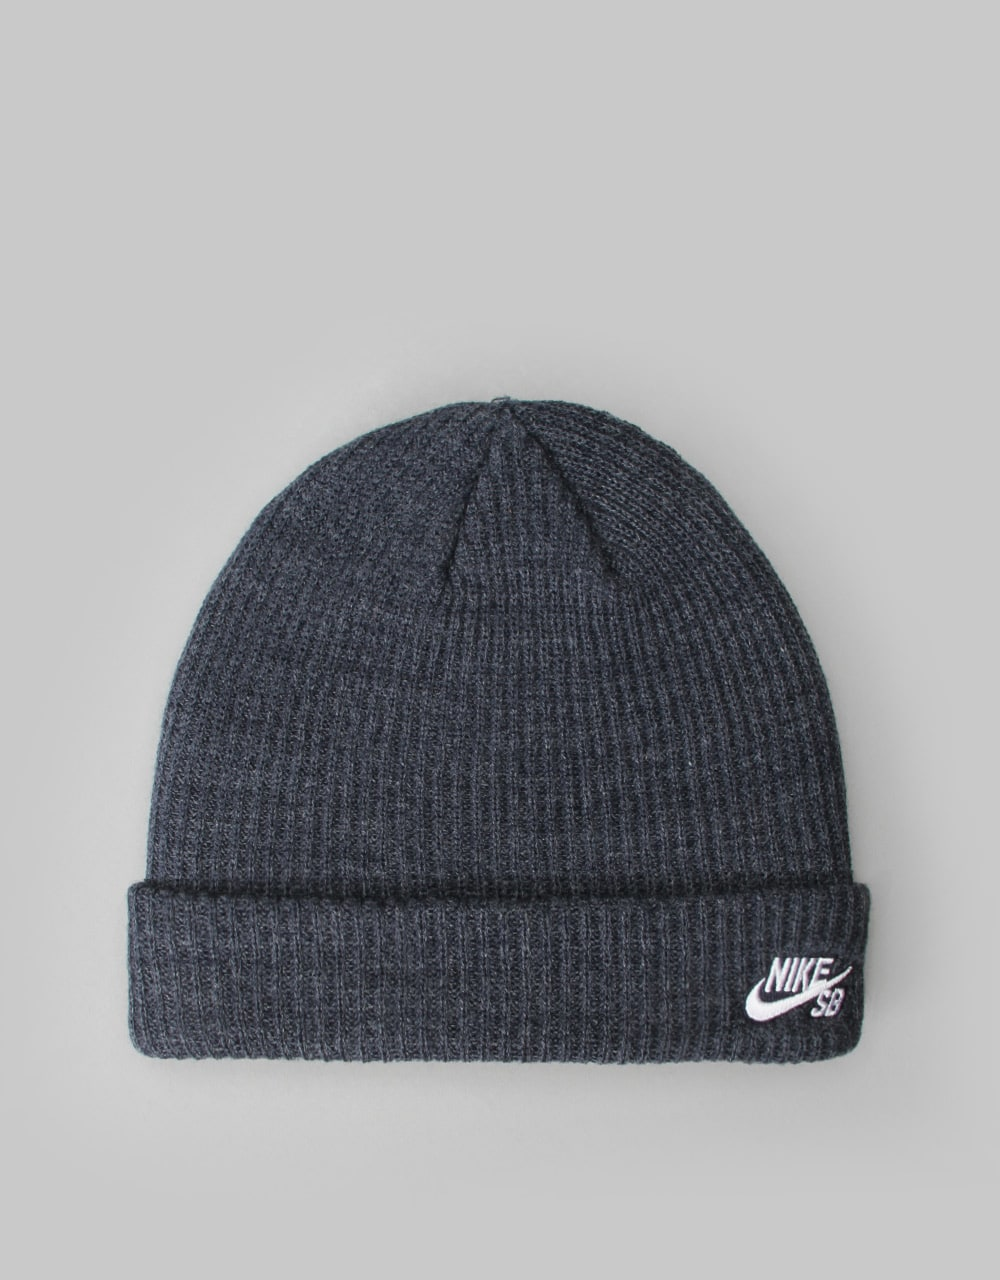 d942c5d4efe Nike SB Fisherman Cuff Beanie - Obsidian Heather White